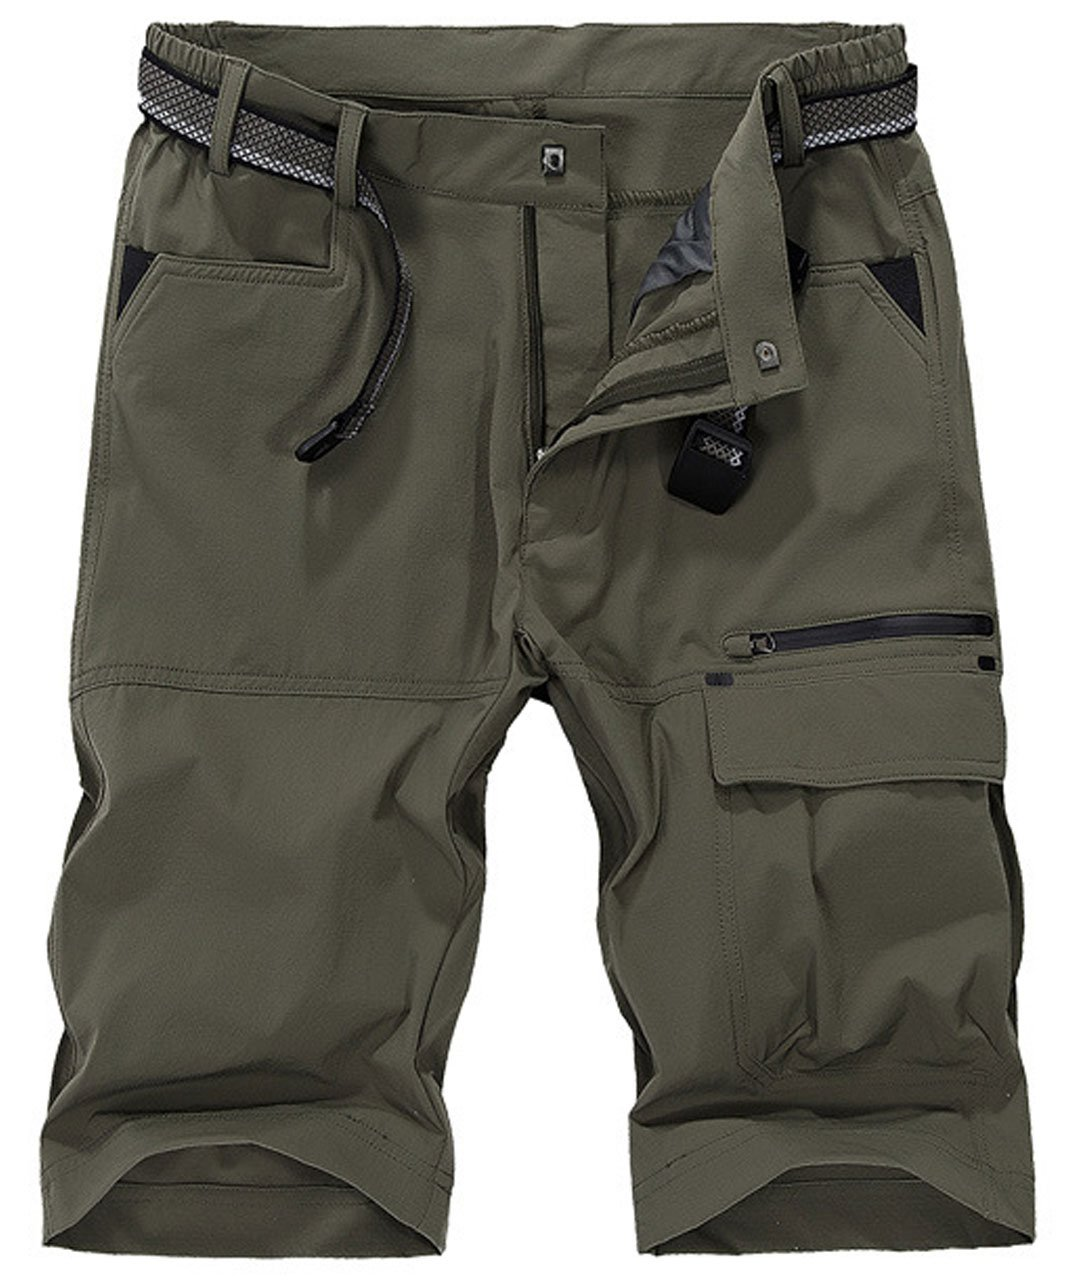 HOW'ON Men's Outdoor Expandable Waist Lightweight Quick Dry ShortsArmy Green 34